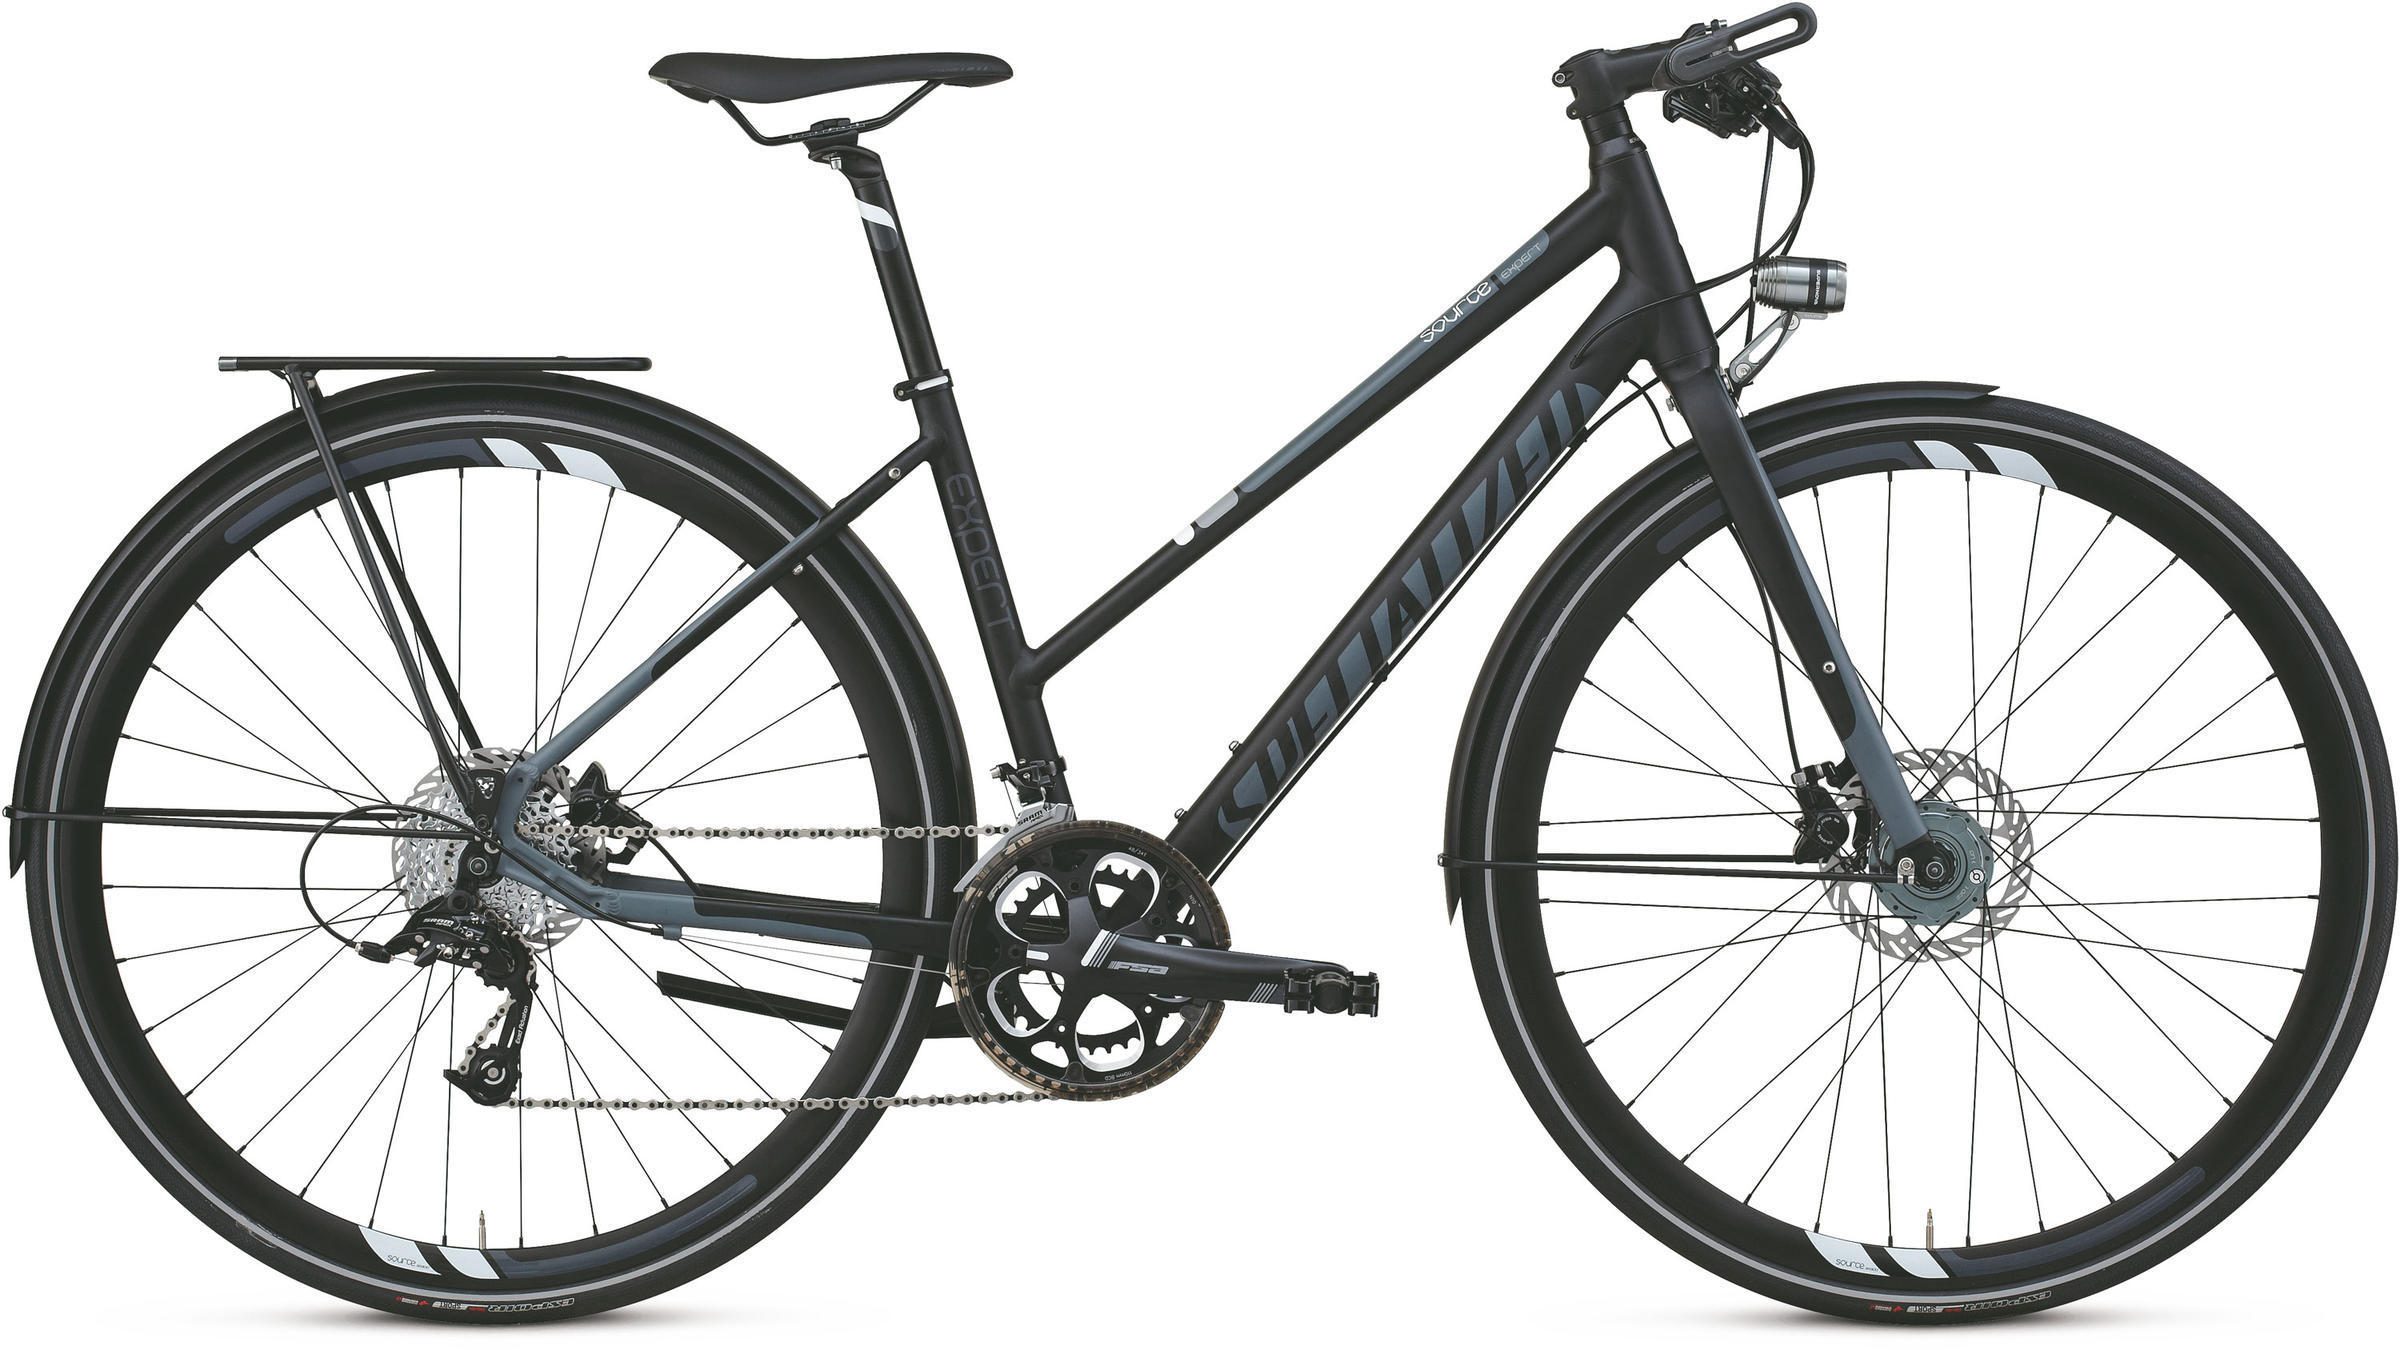 2013 Specialized Source Expert Disc Step-Through